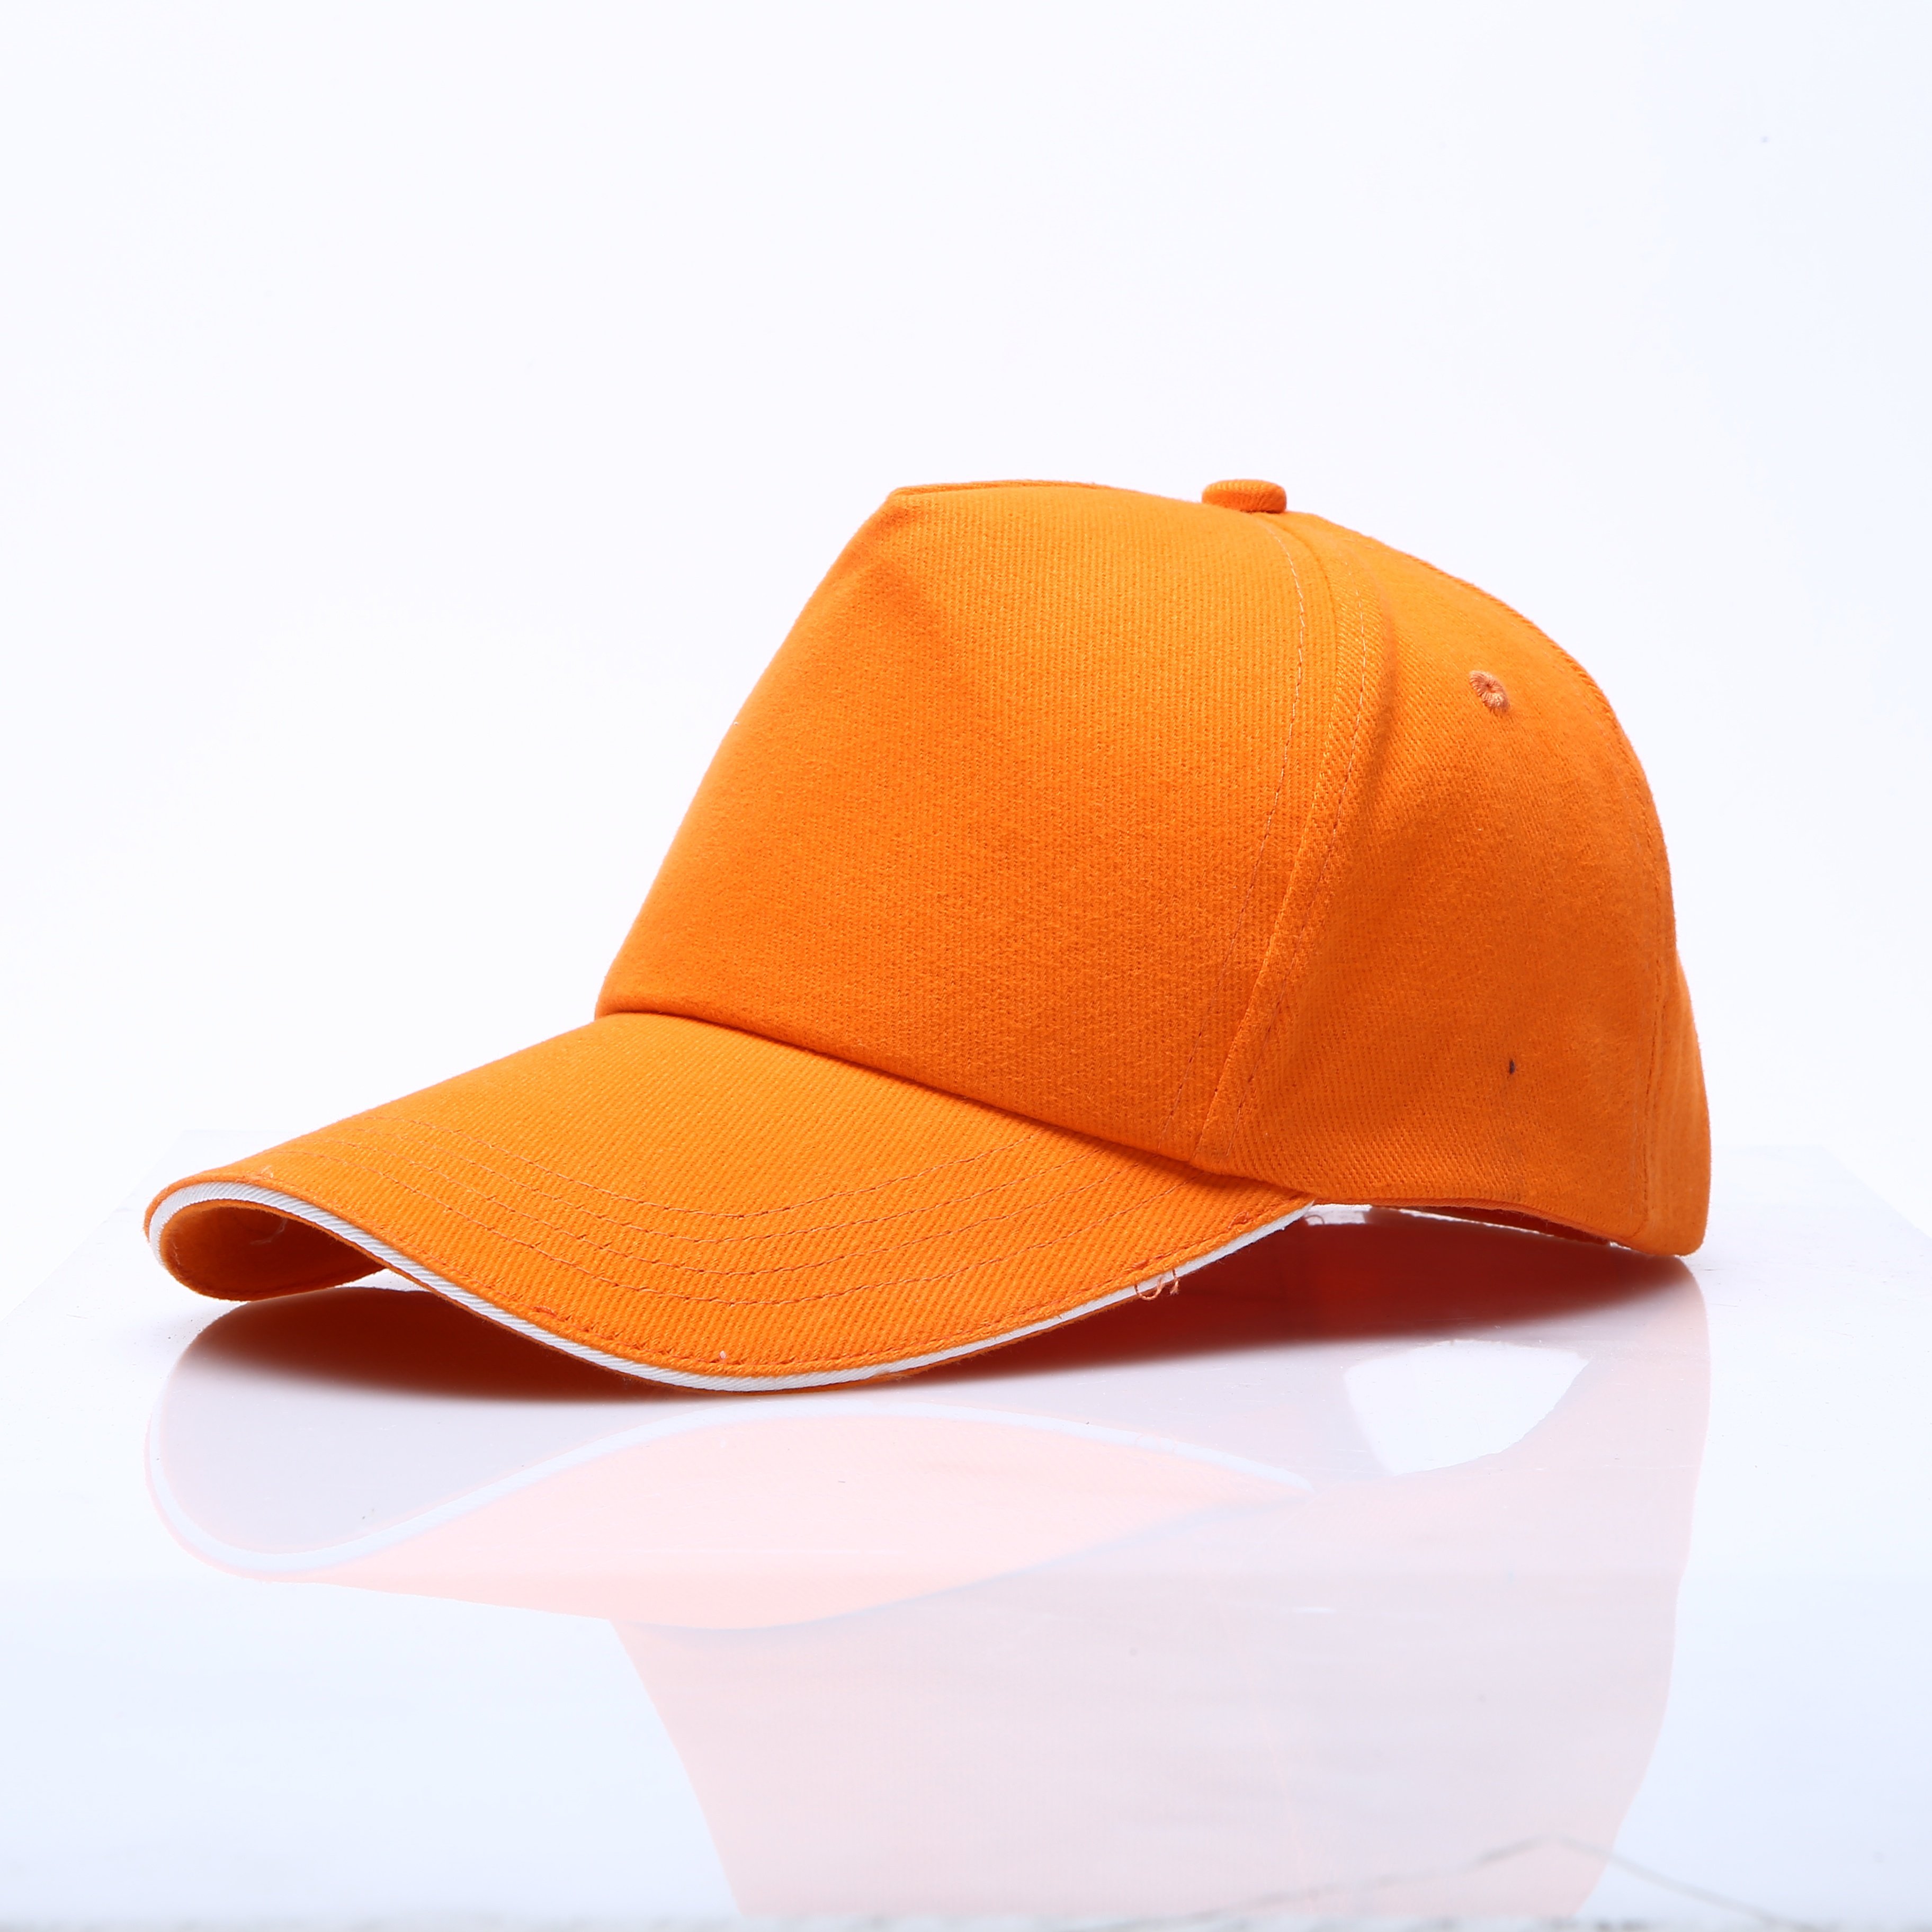 2020 new style customized plain dyed 5-panel baseball cap trucker cap